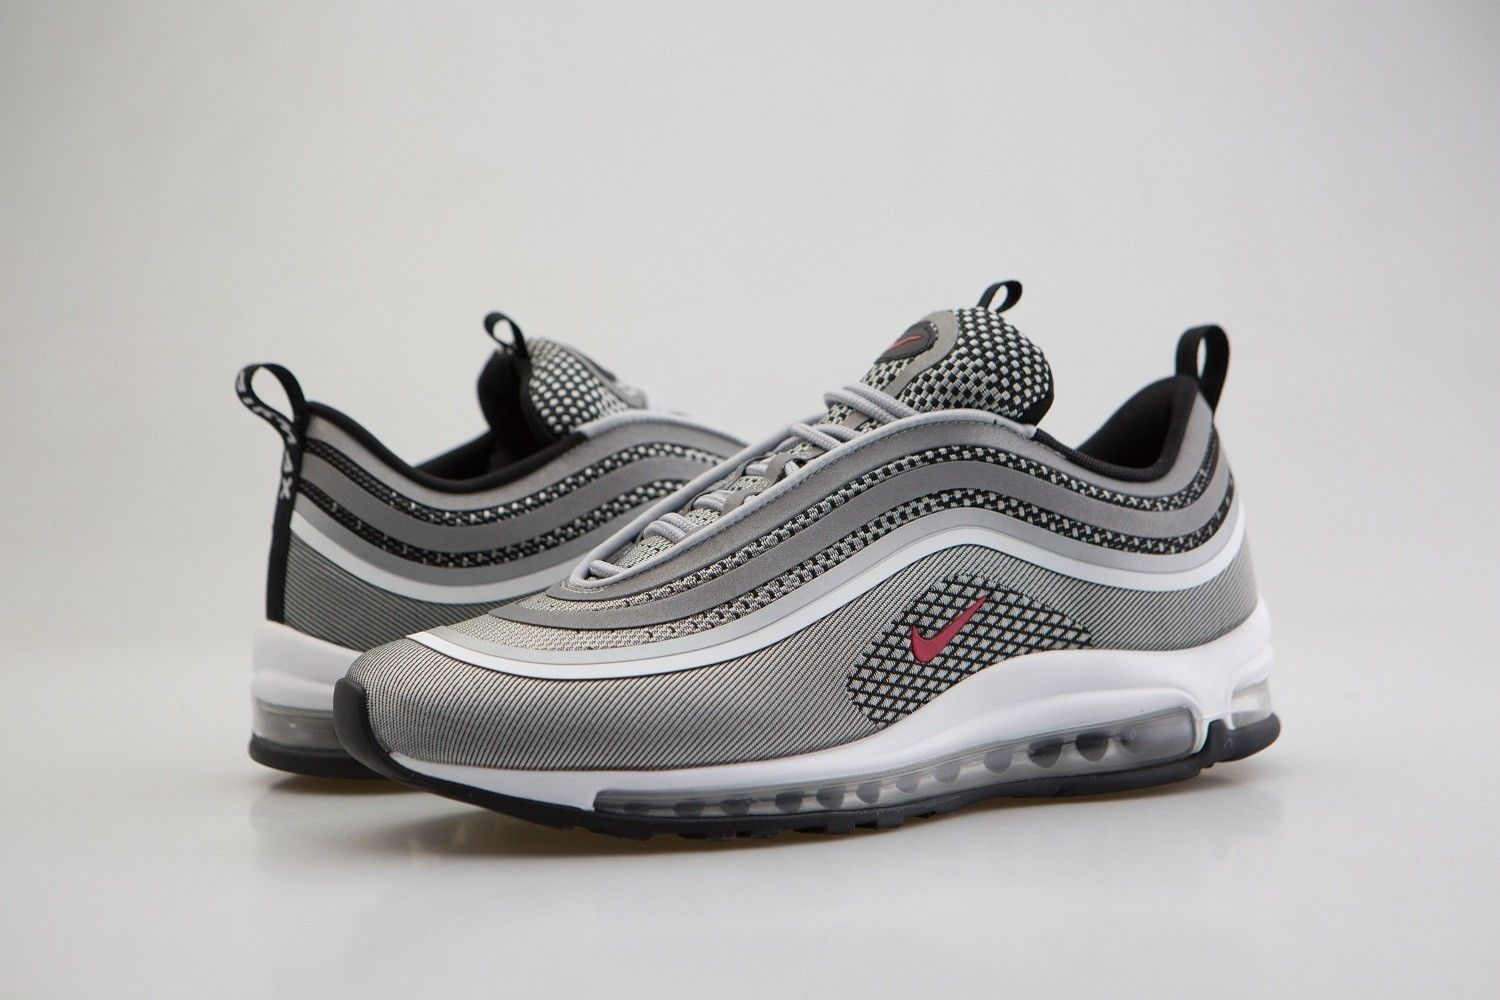 Available Now Nike Air Max 97 Ultra 17 918356 003